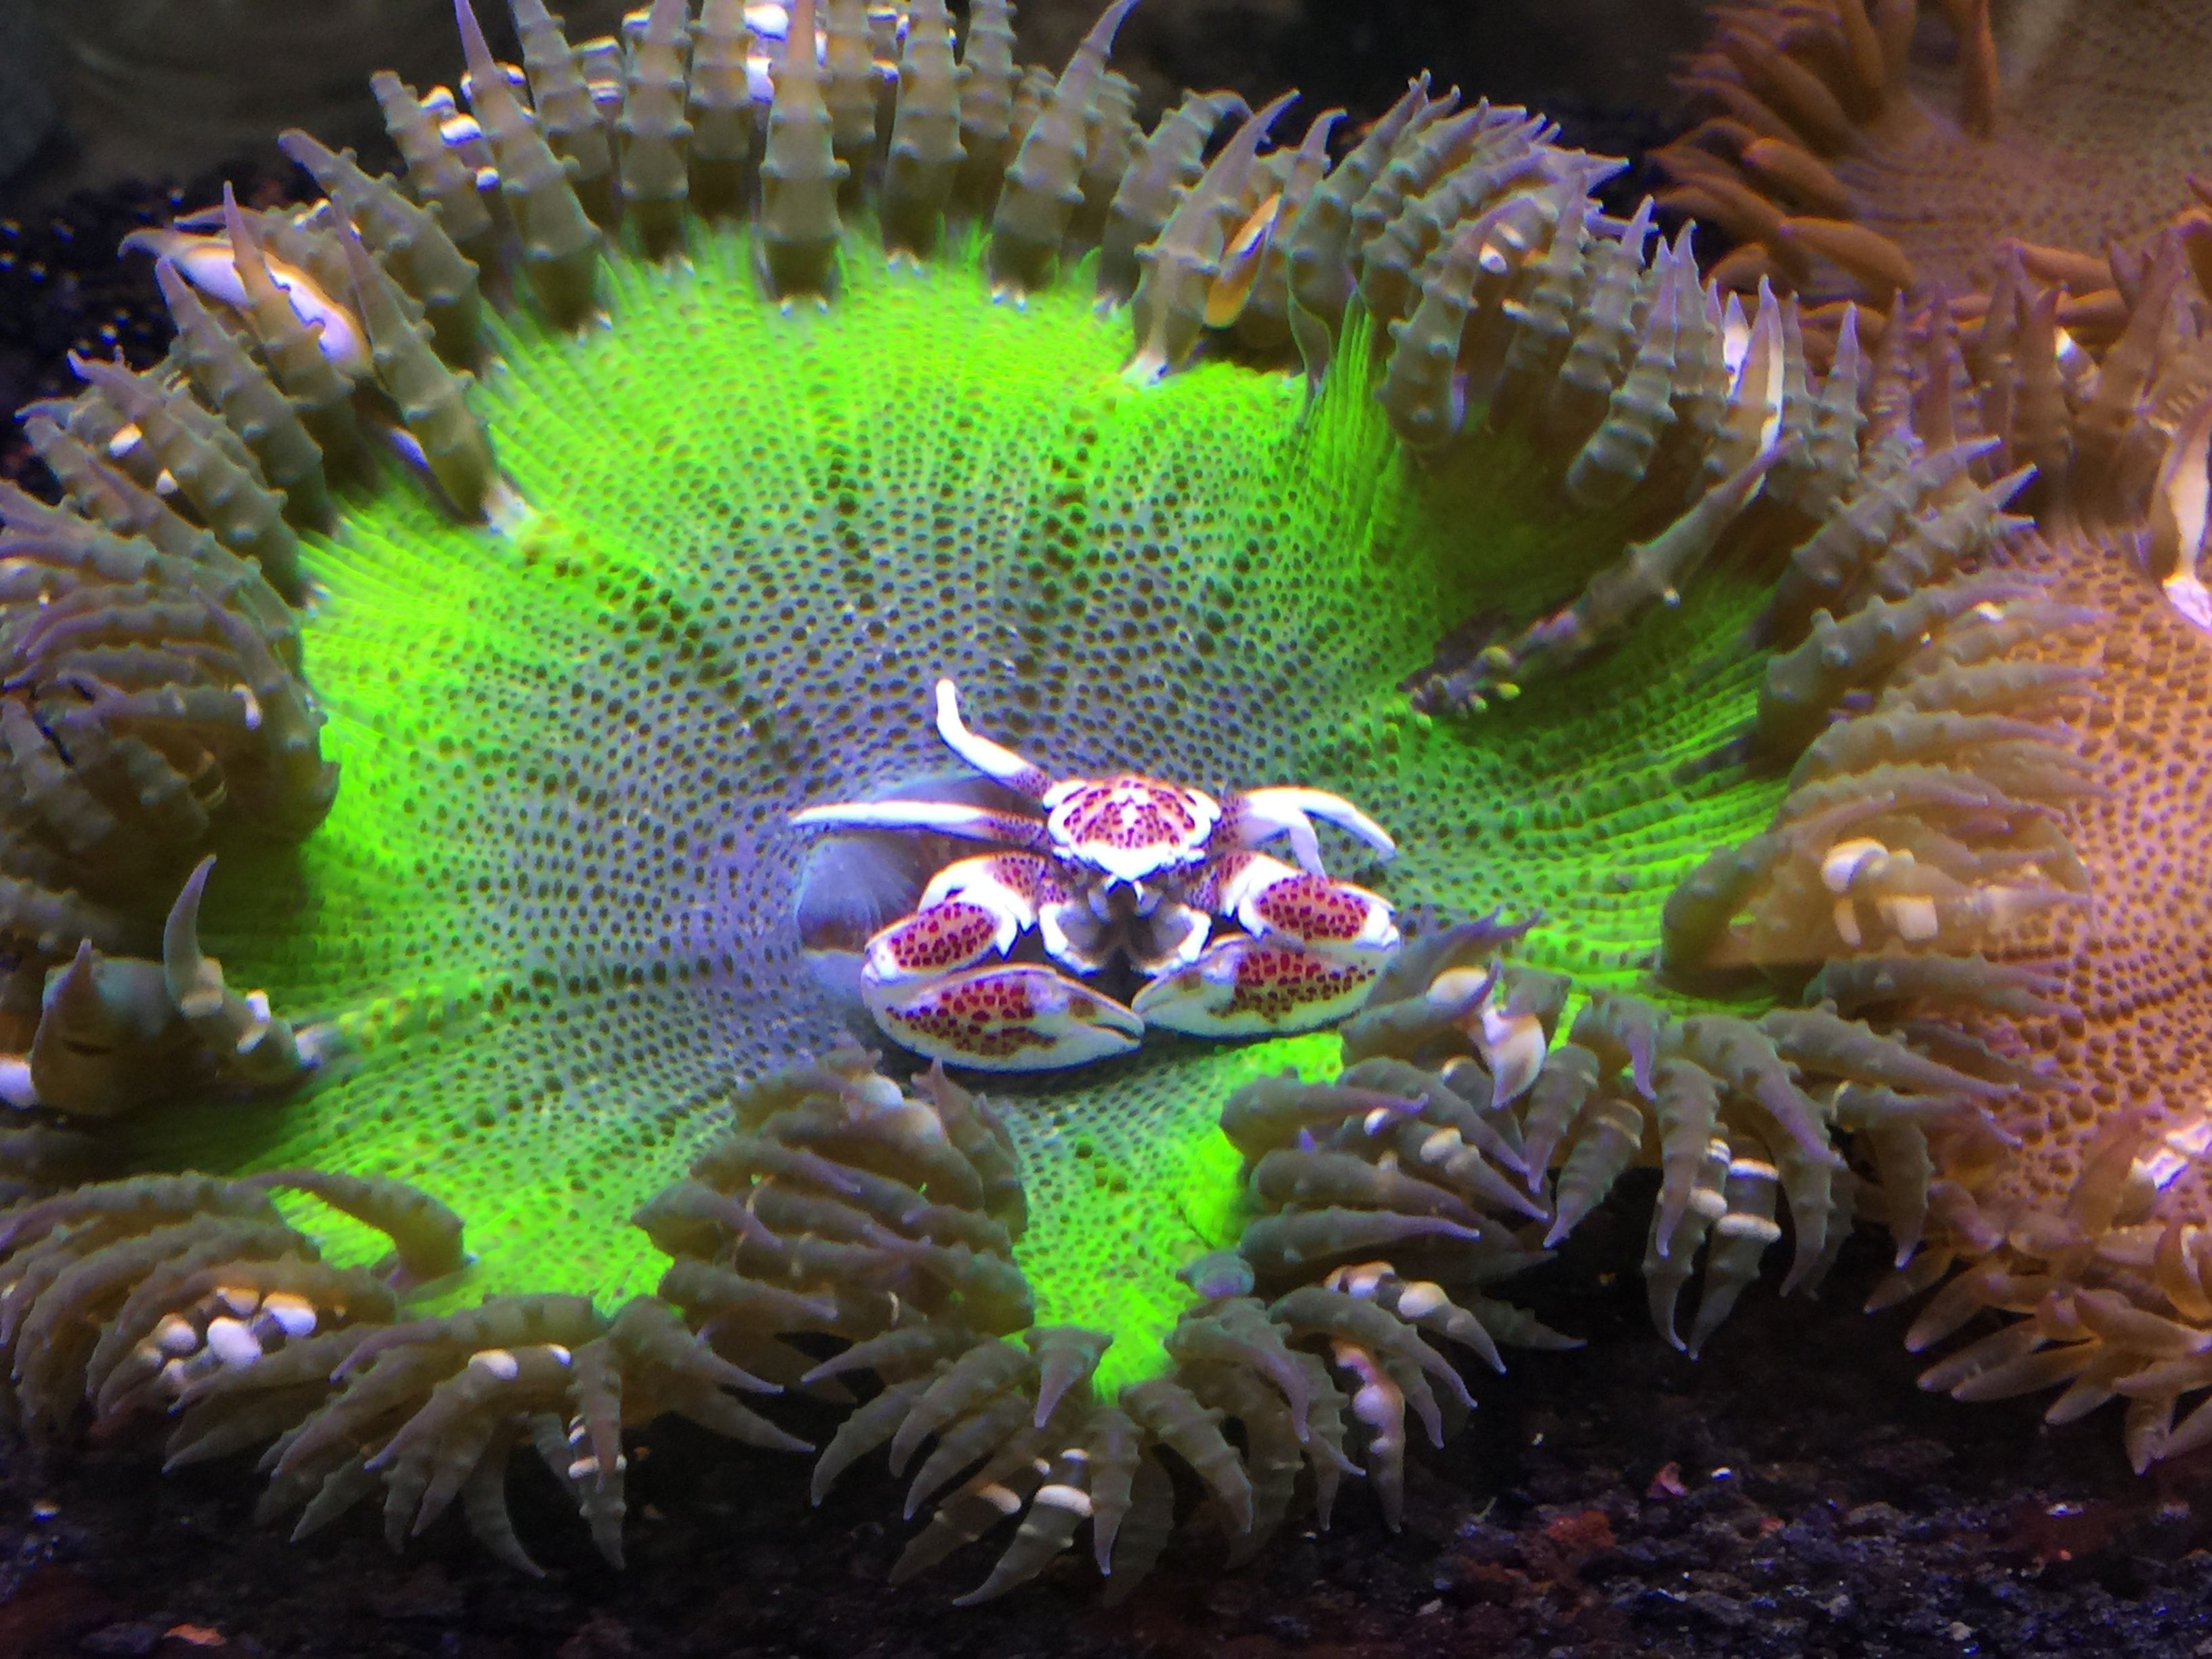 Rock Flower Anemone A Porcelain Crab Coral Reef Aquarium Reef Tank Reef Aquarium